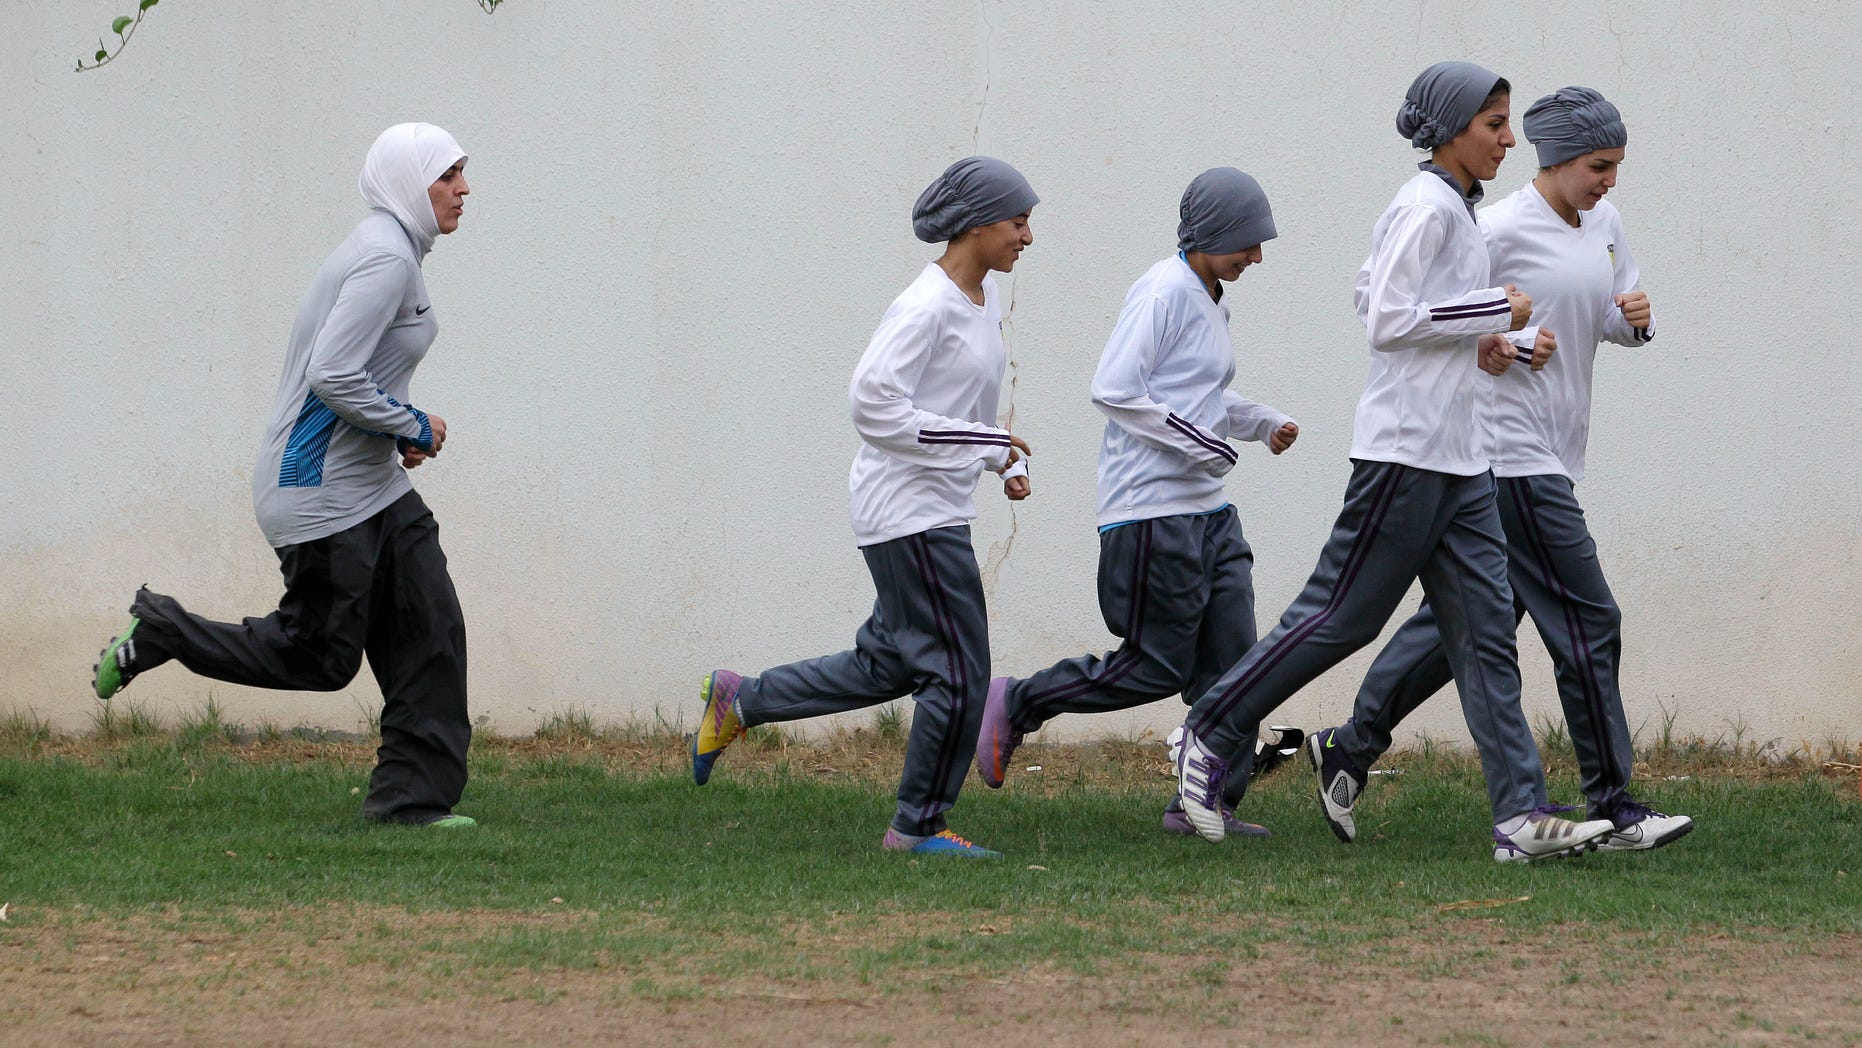 In this May 21, 2012 file photo, members of a Saudi female soccer team practice at a secret location in Riyadh, Saudi Arabia.